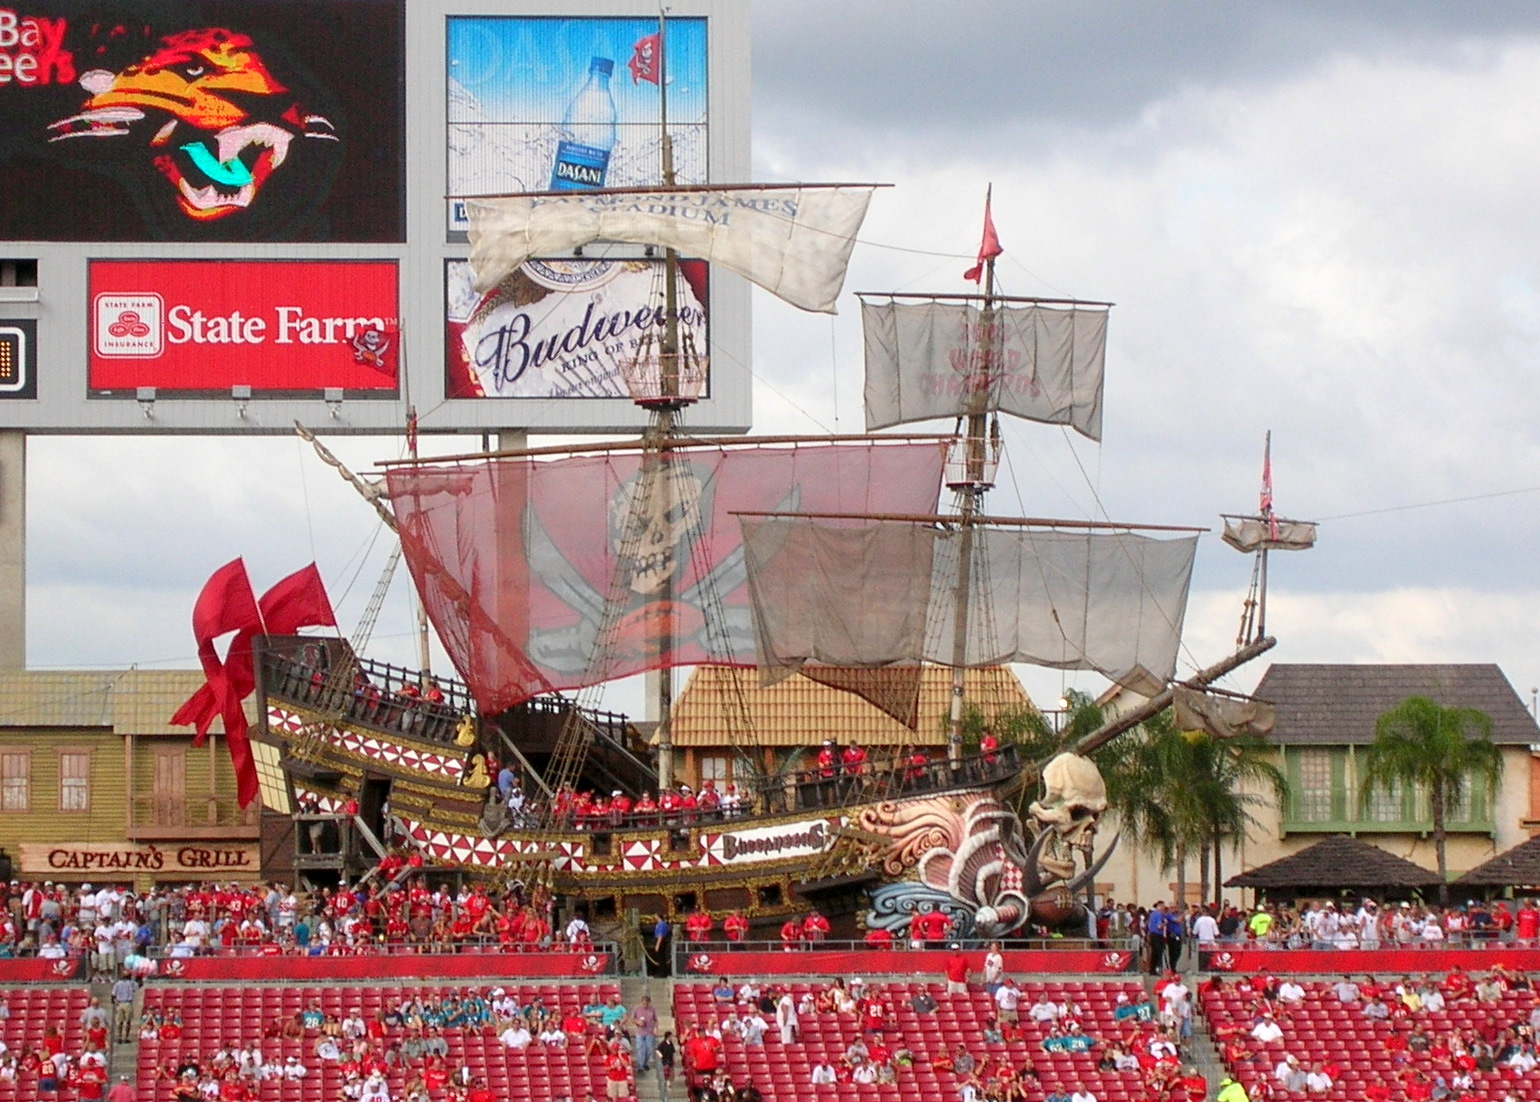 Image of the pirate ship at Raymond James Stadium.